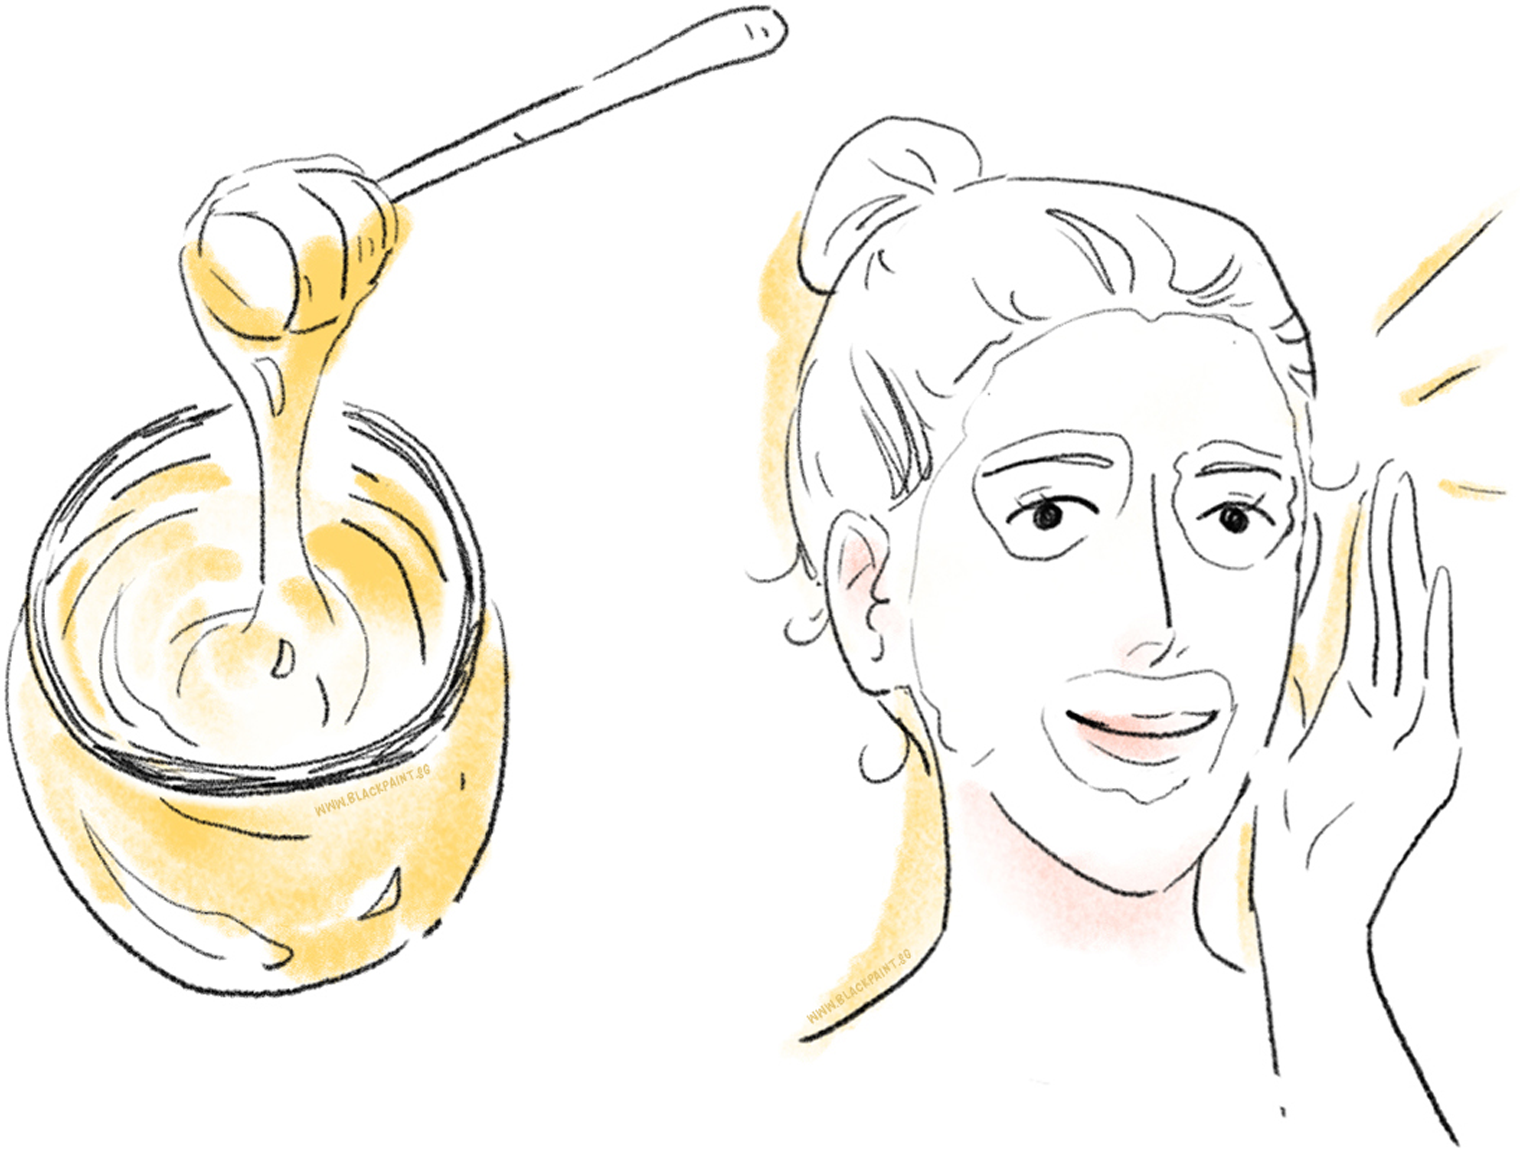 Honey can be used as a facial mask ingredient for brighter skin